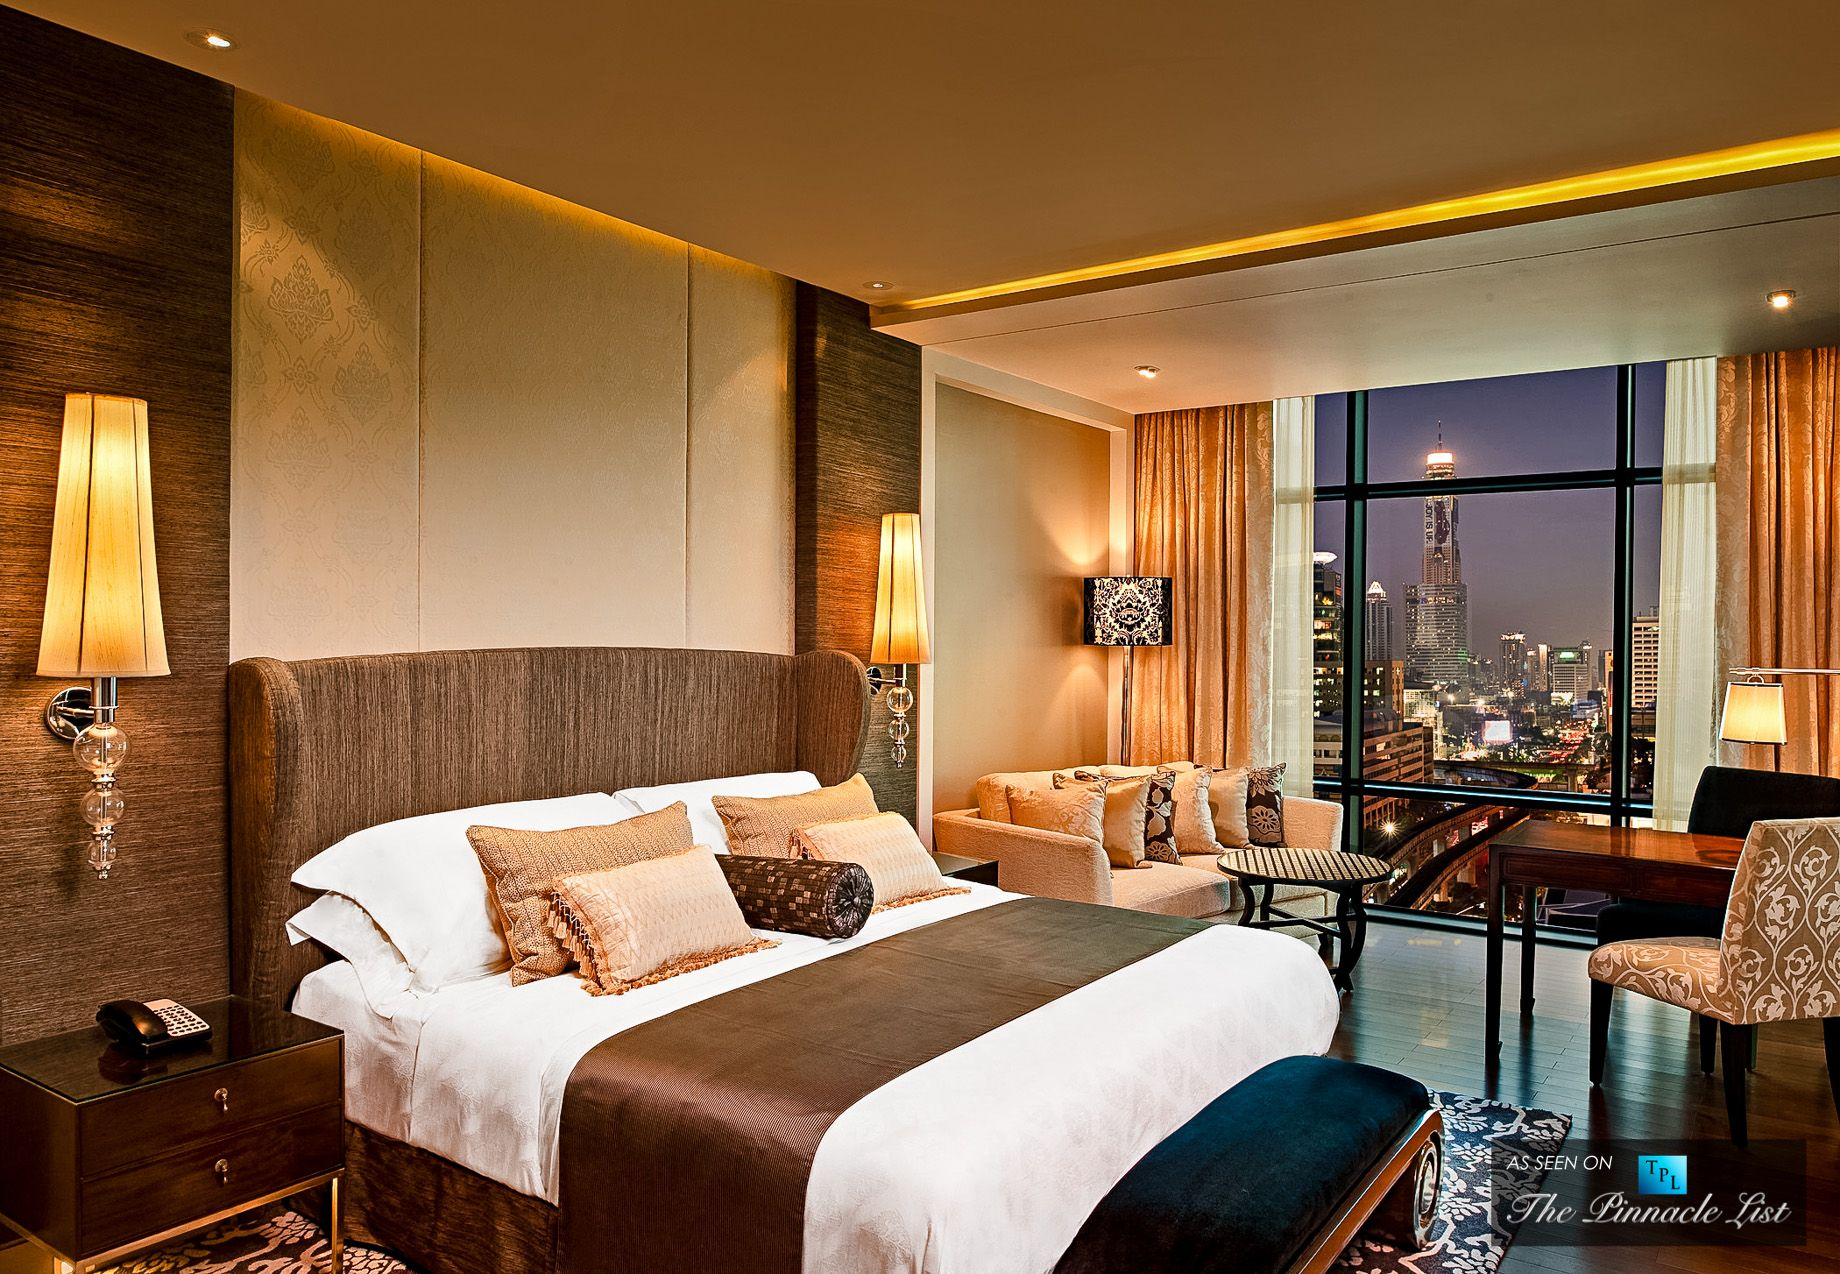 St regis luxury hotel bangkok thailand grand deluxe for 5 star bedroom designs